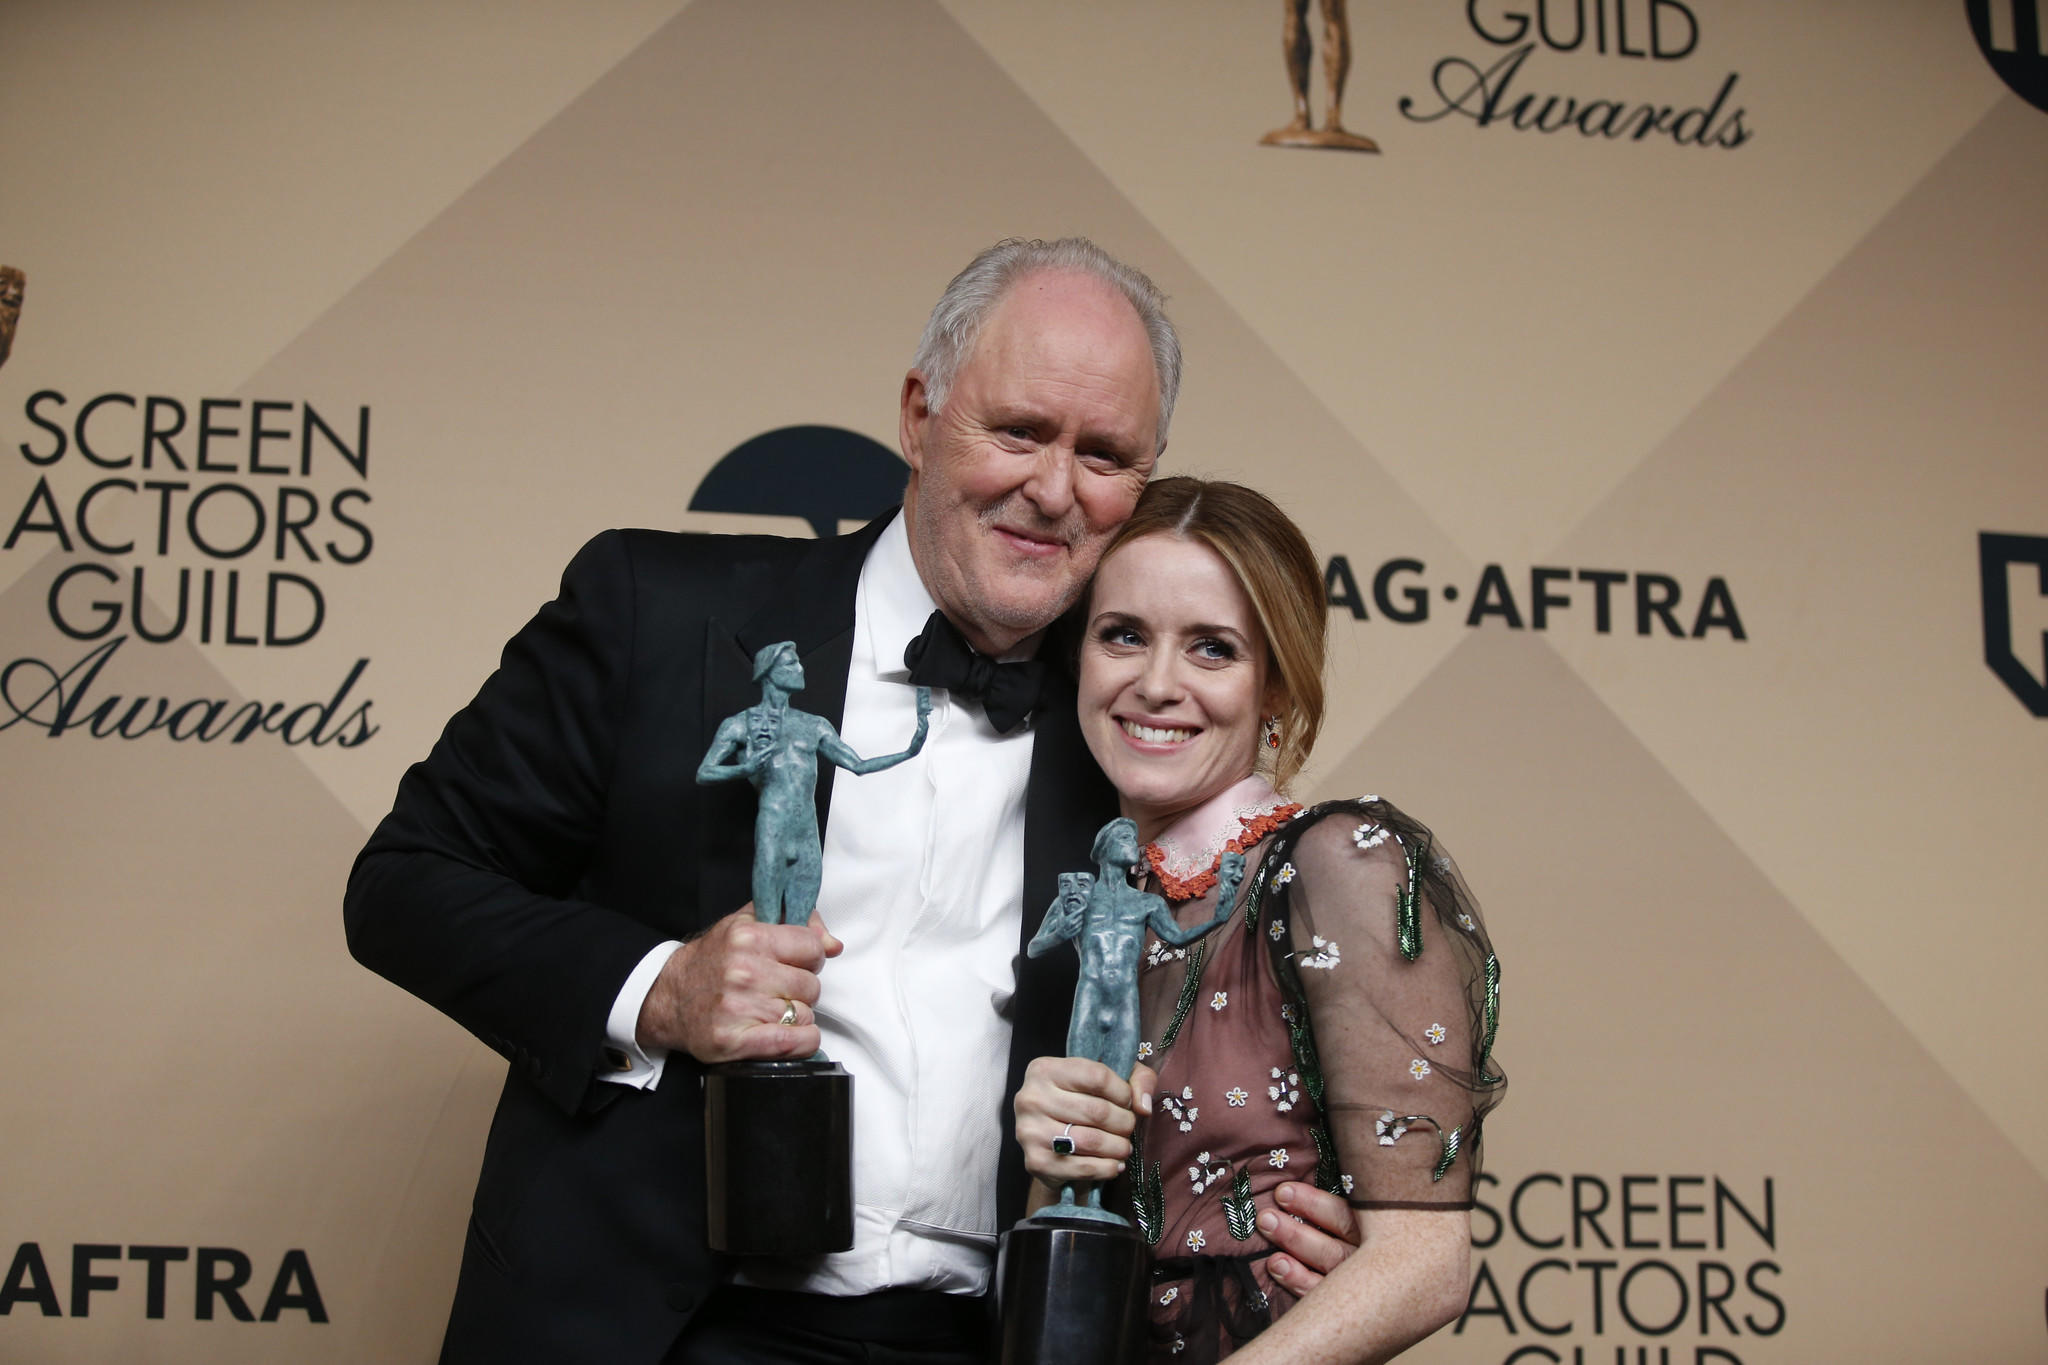 """The Crown's"" John Lithgow, winner for male actor in a drama series, with costar Claire Foy, winner for female actor in a drama series. (Frazer Harrison / Getty Images)"